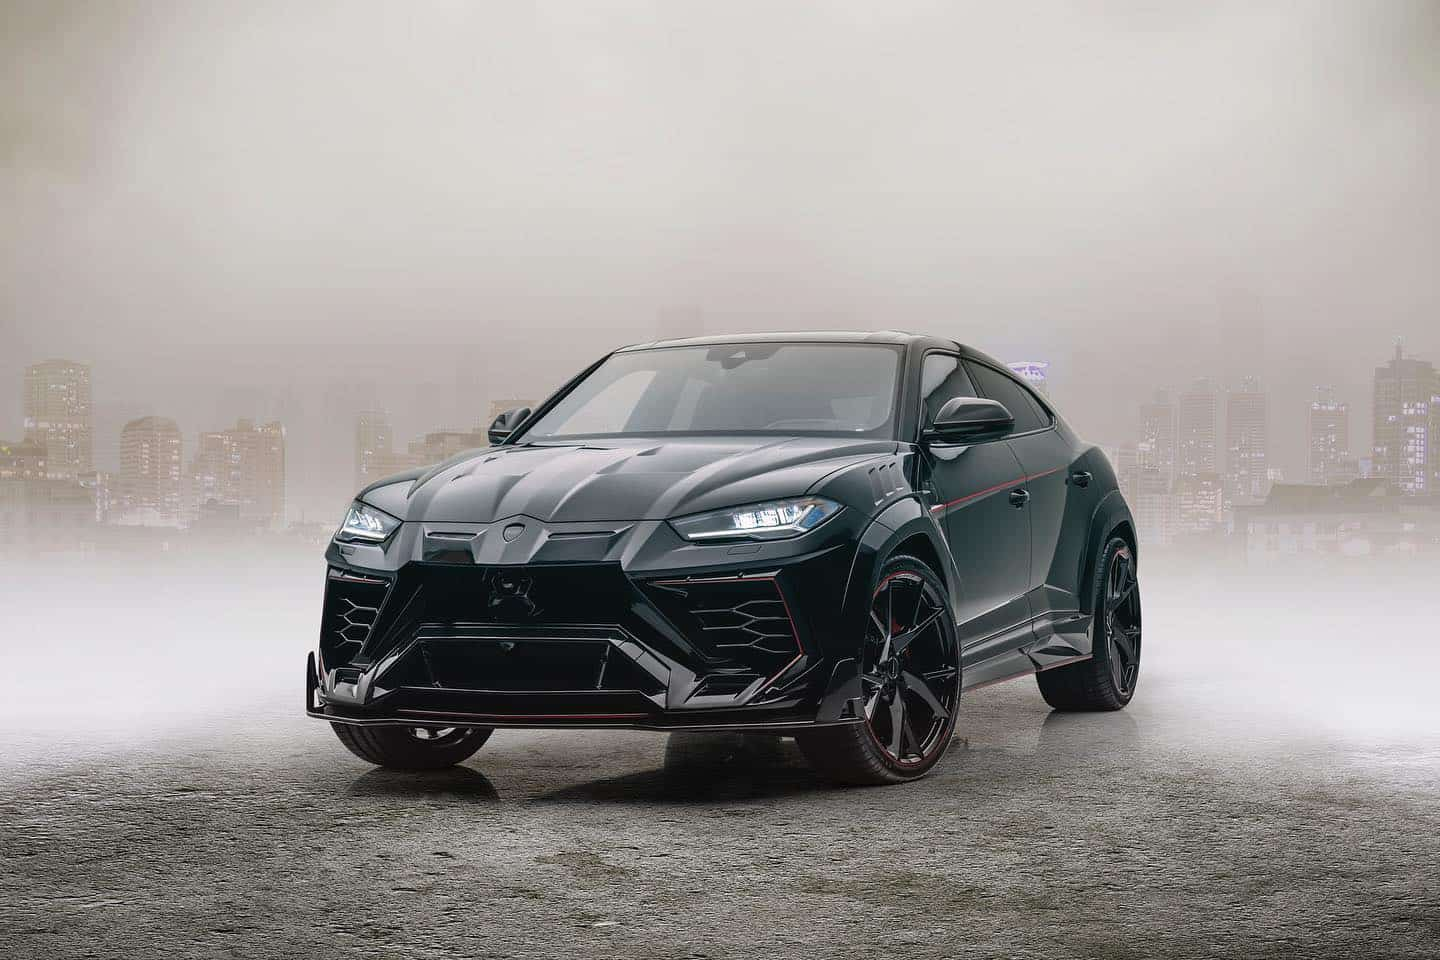 2020 Mansory Venatus based on Lamborghini Urus